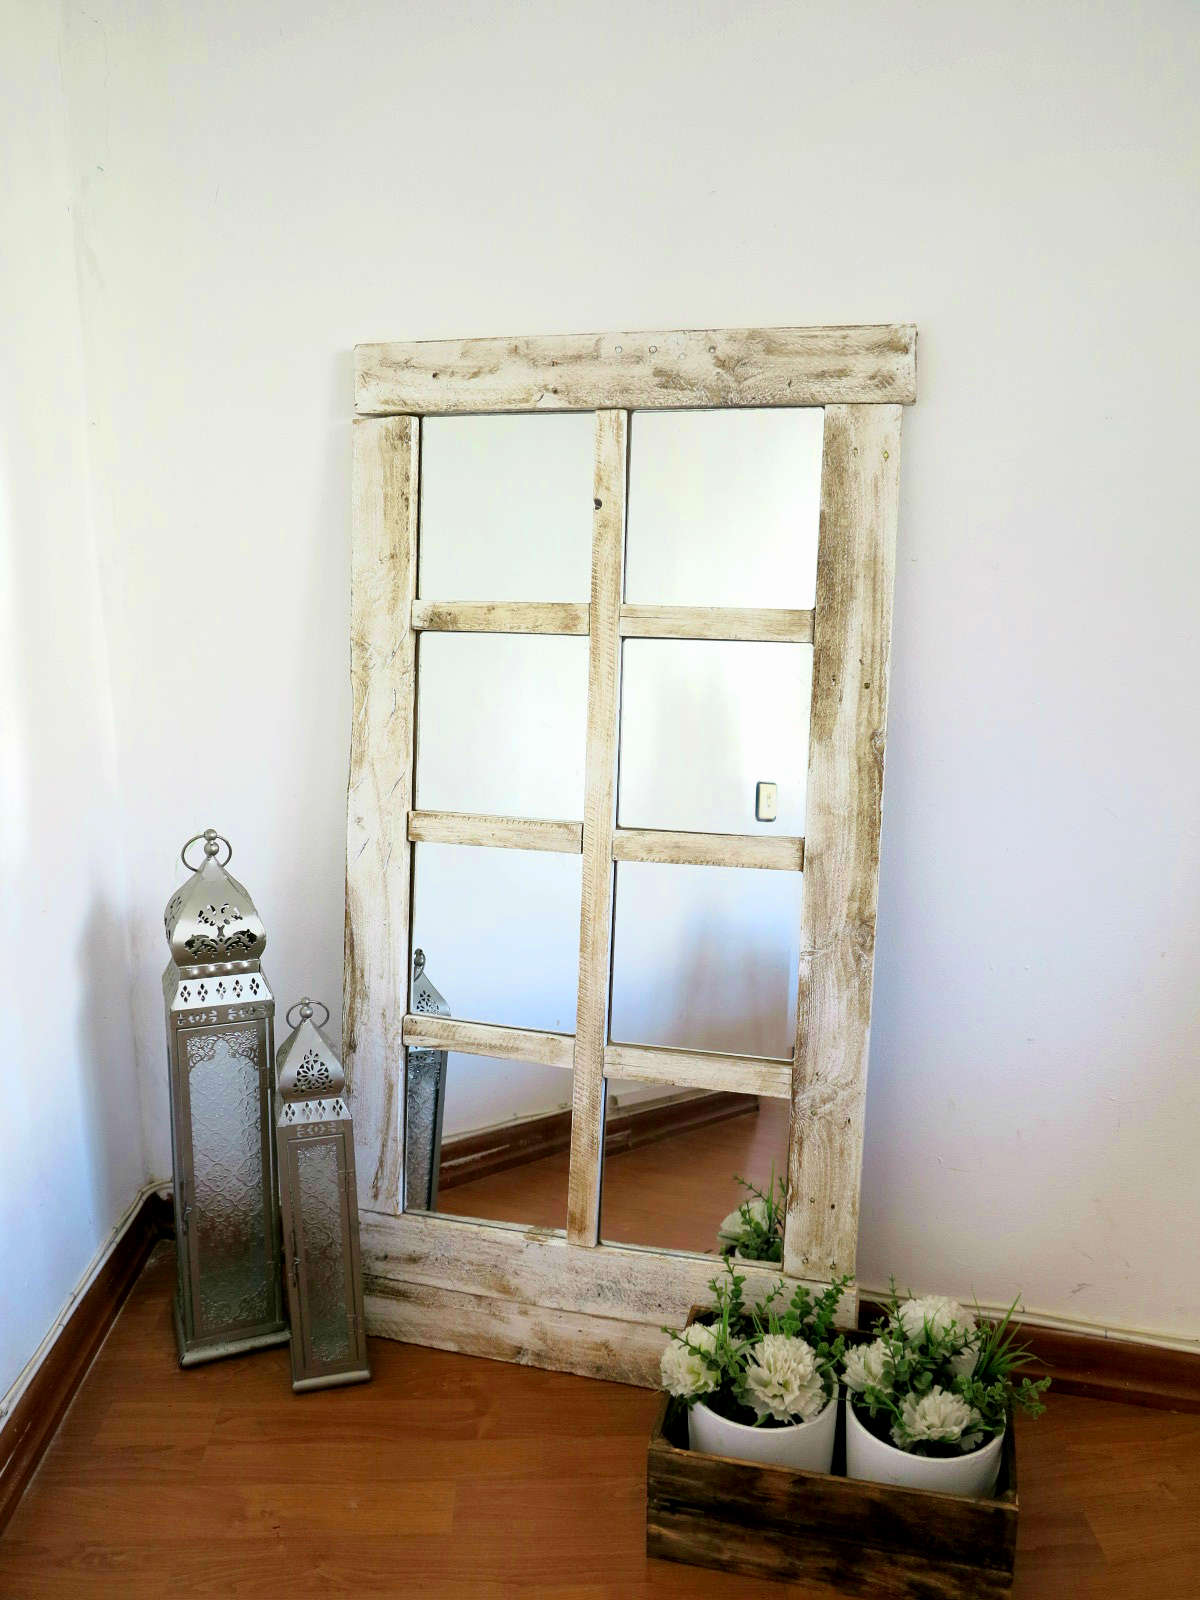 Diy espejo decorar tu casa es for Espejos madera para decorar